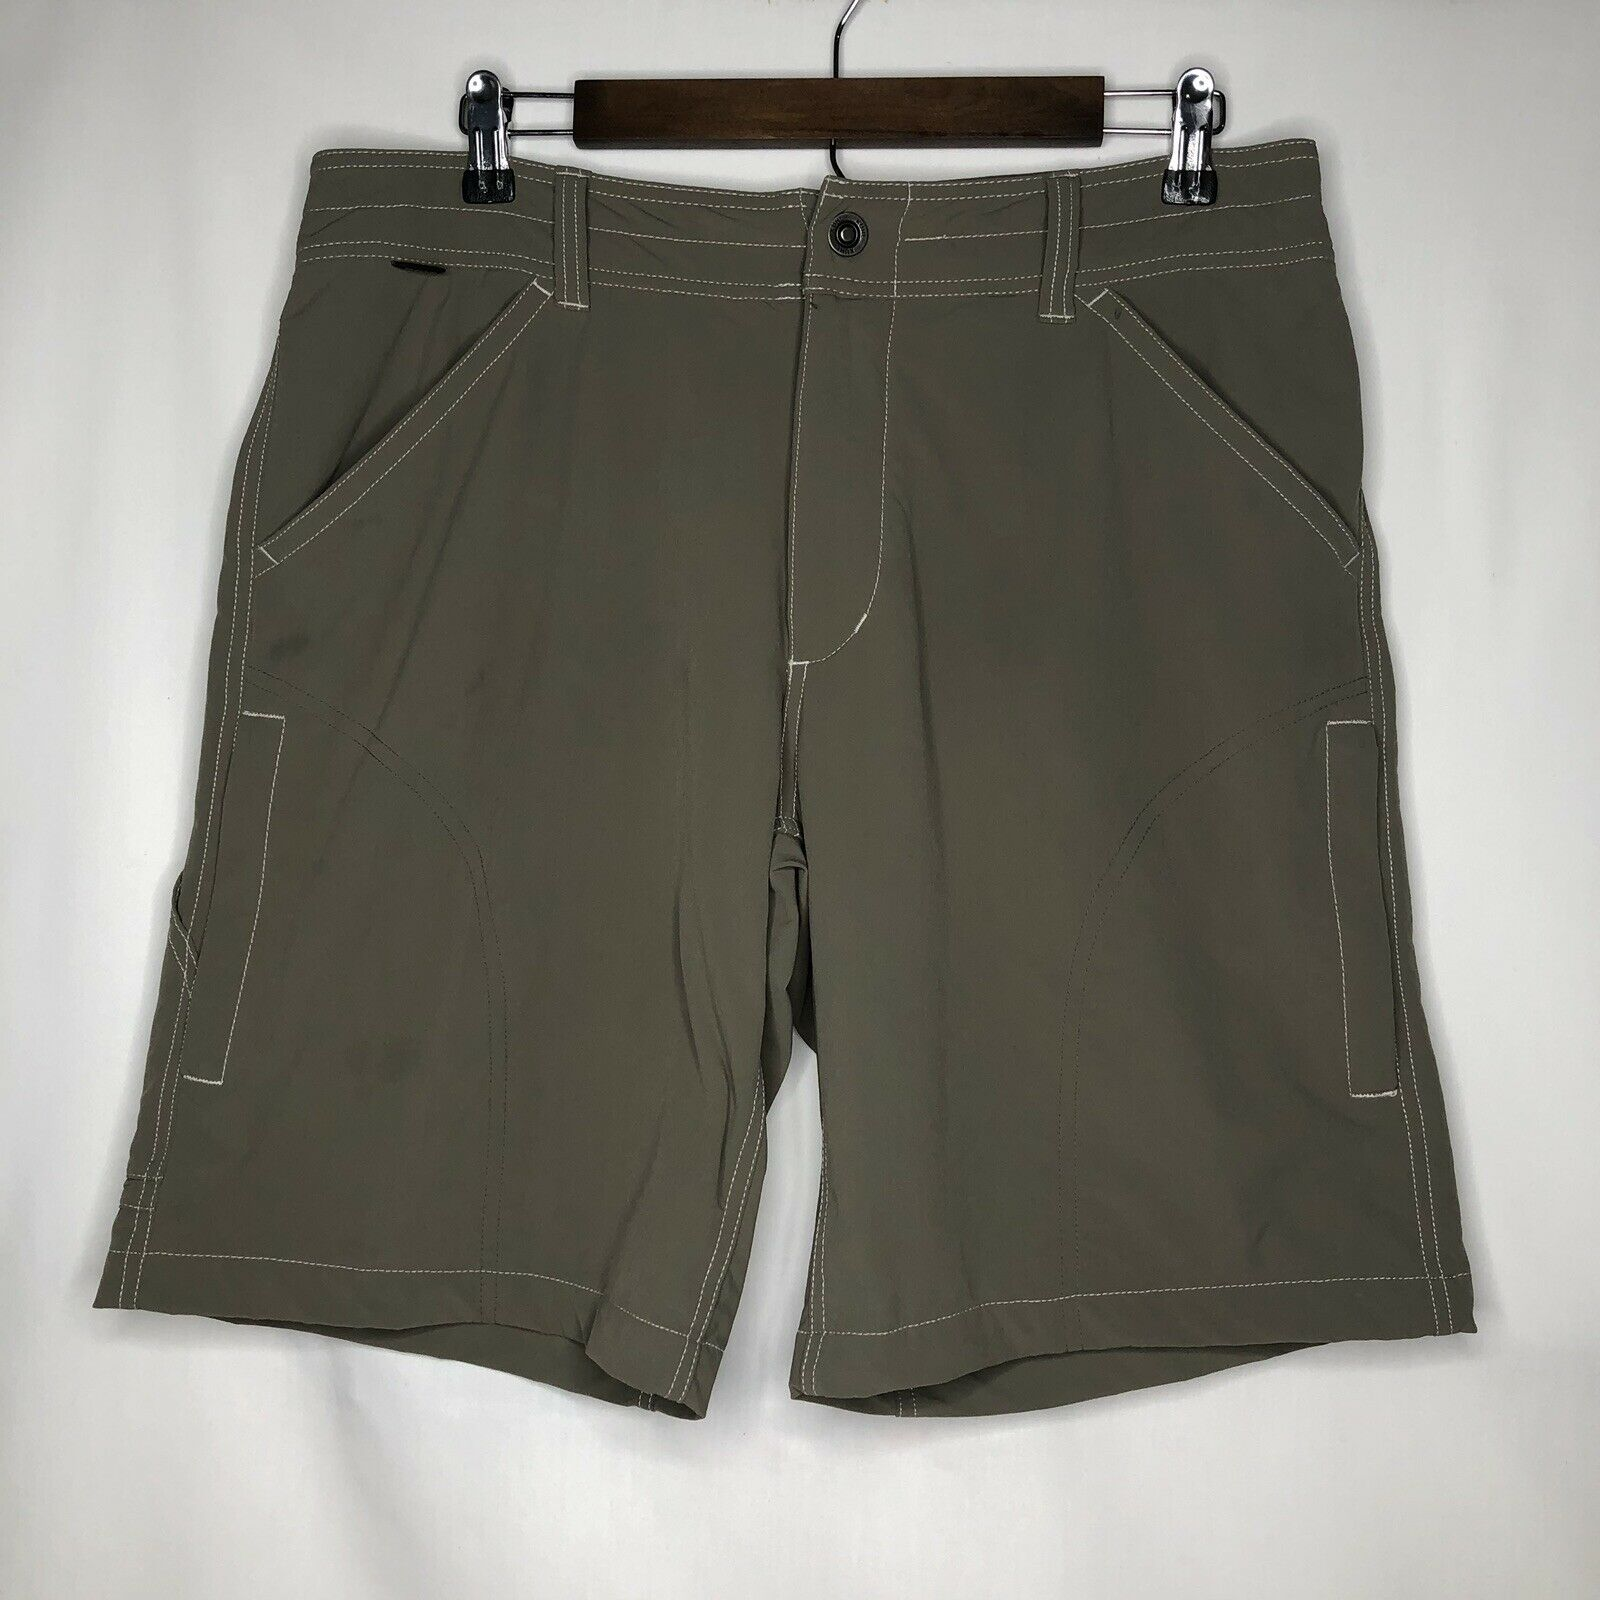 KUHL Mens Sz 34 Performance Shorts Olive  Khaki Hiking Trail Outerwear Cargo  store sale outlet